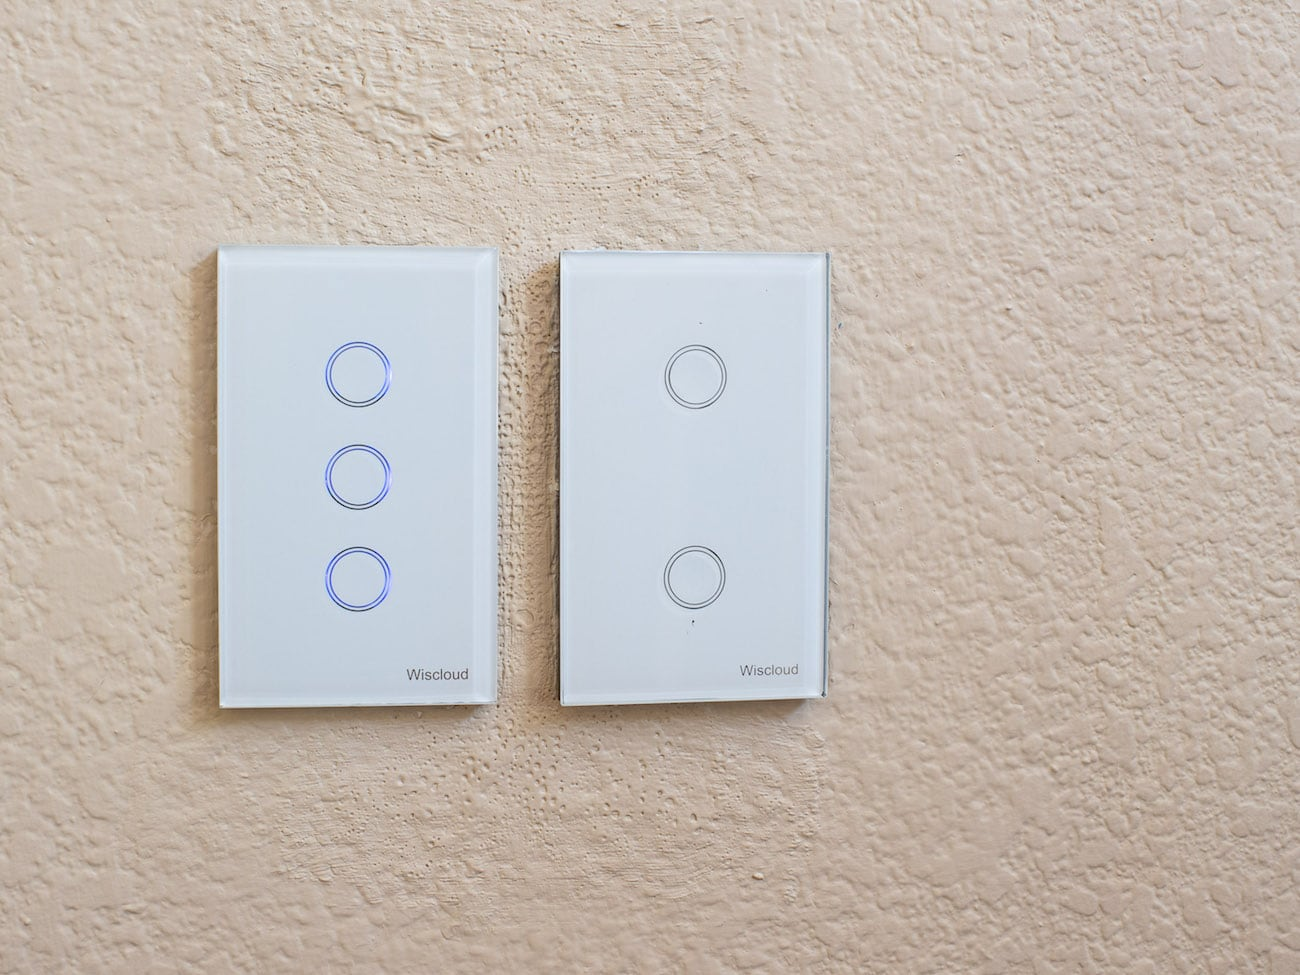 Wiscloud Smart Home System